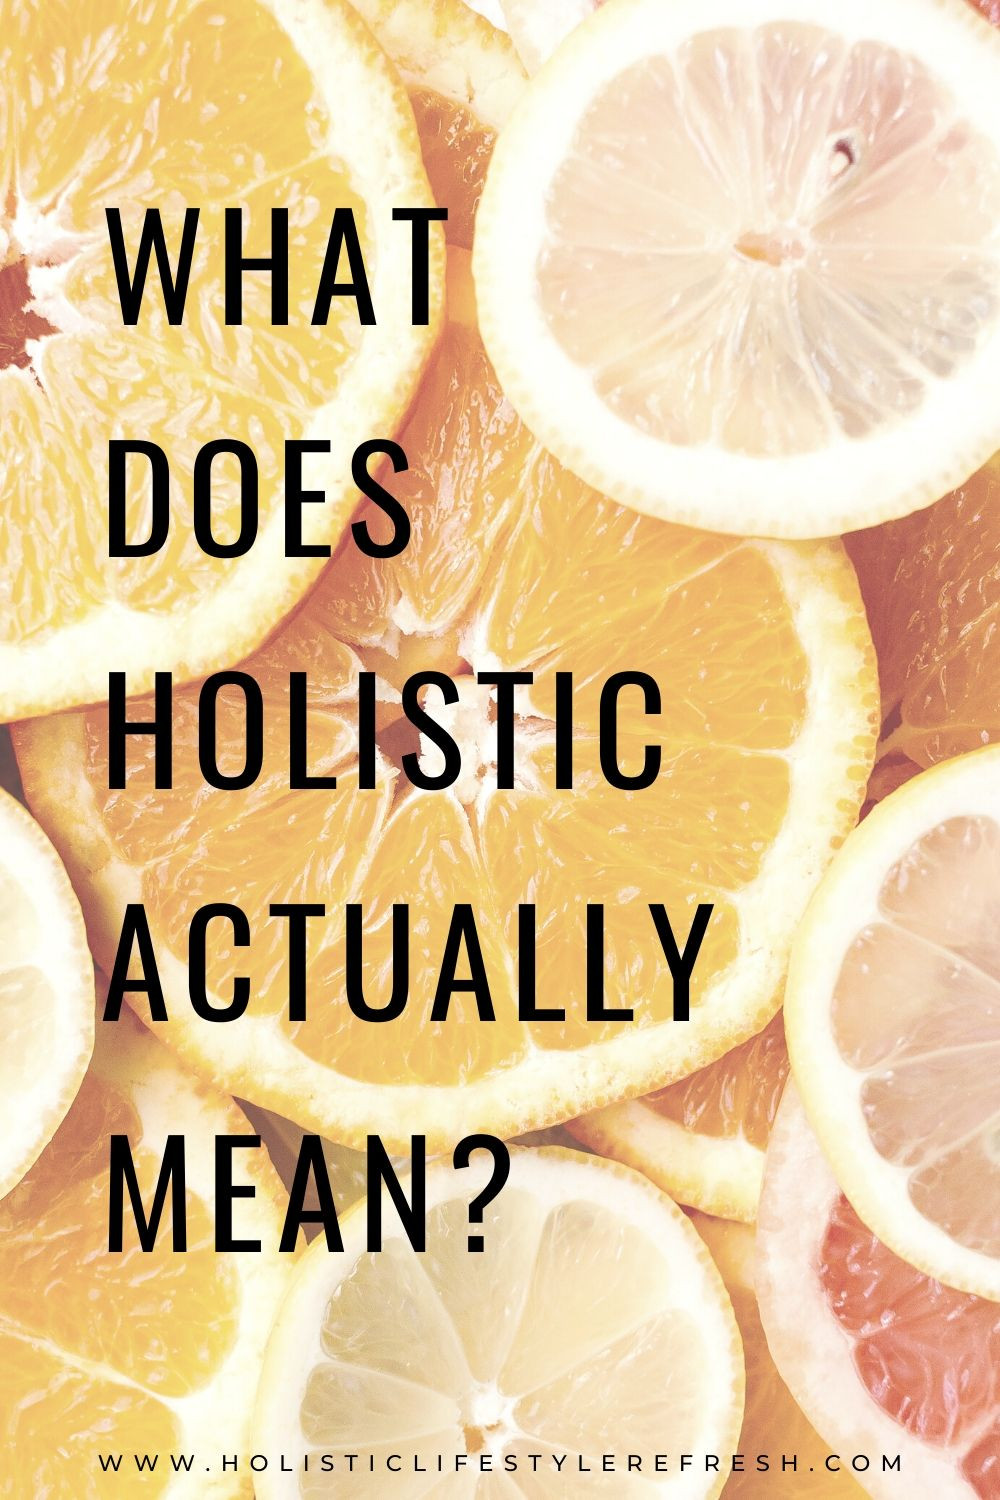 holistic defined, what does holistic mean, what is a holistic approach, what is the definition of holistic, what does it mean to be holistic, holistic approach occupational therapy